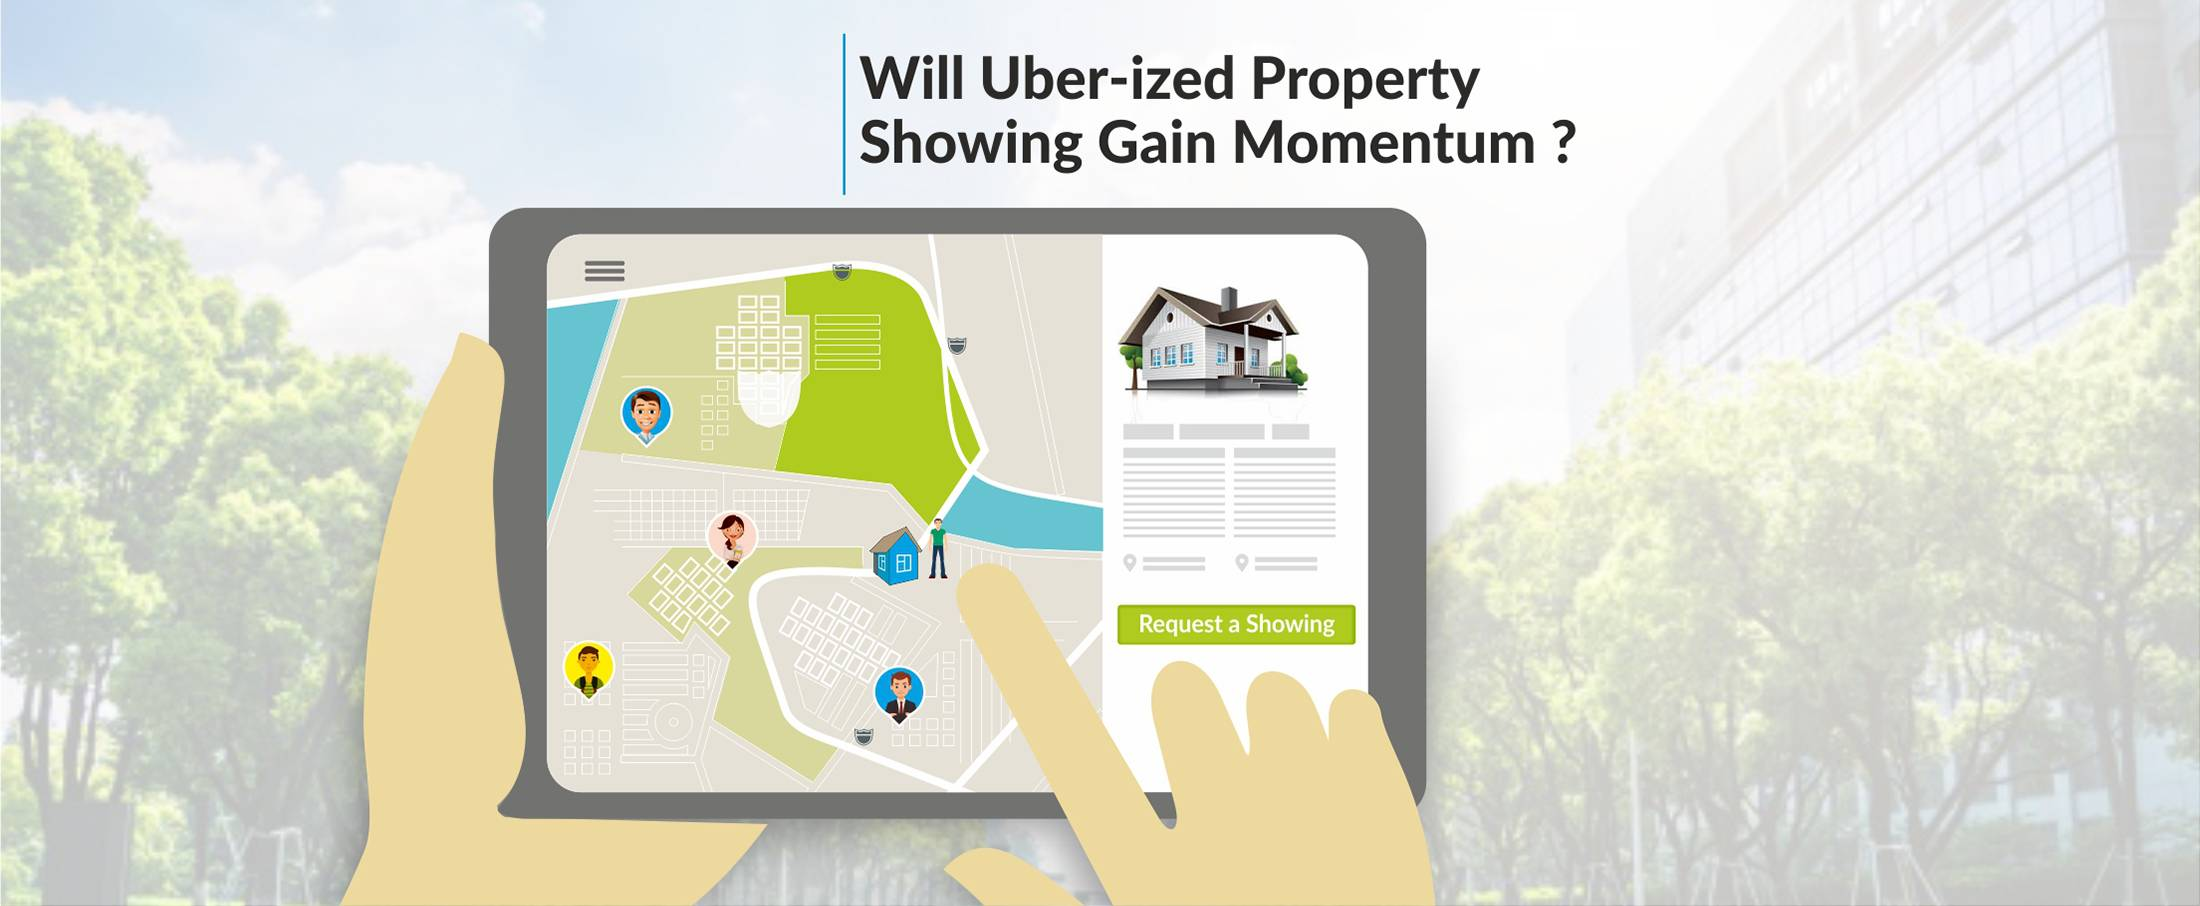 Will Uber-ized Property Showing Gain Momentum?